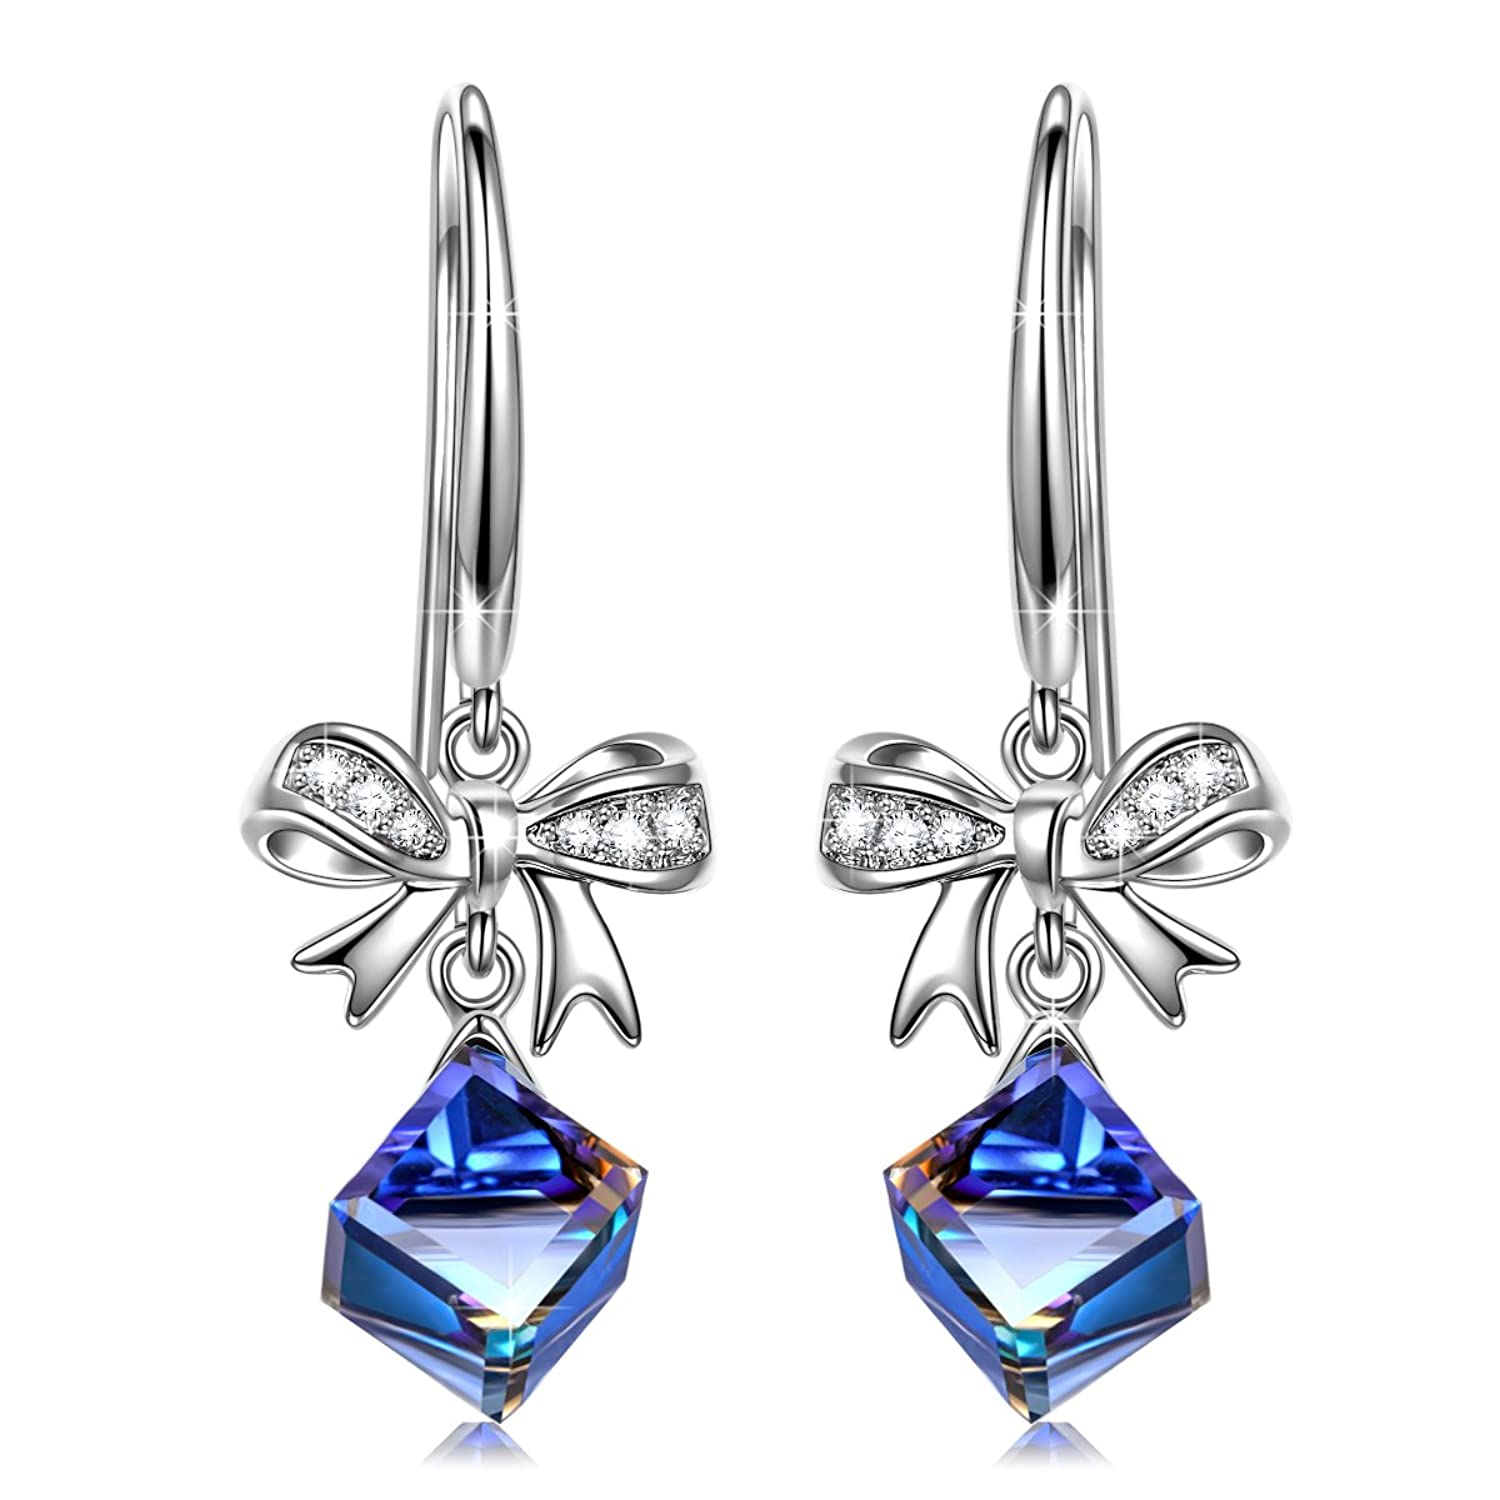 J.NINA Hypoallergenic Drop Earrings, ♥Jewelry Gifts♥ with Exquisite Package Magic of Love Dangle Earrings with Swarovski Crystals, Bowtie Design for Pierced Earrings